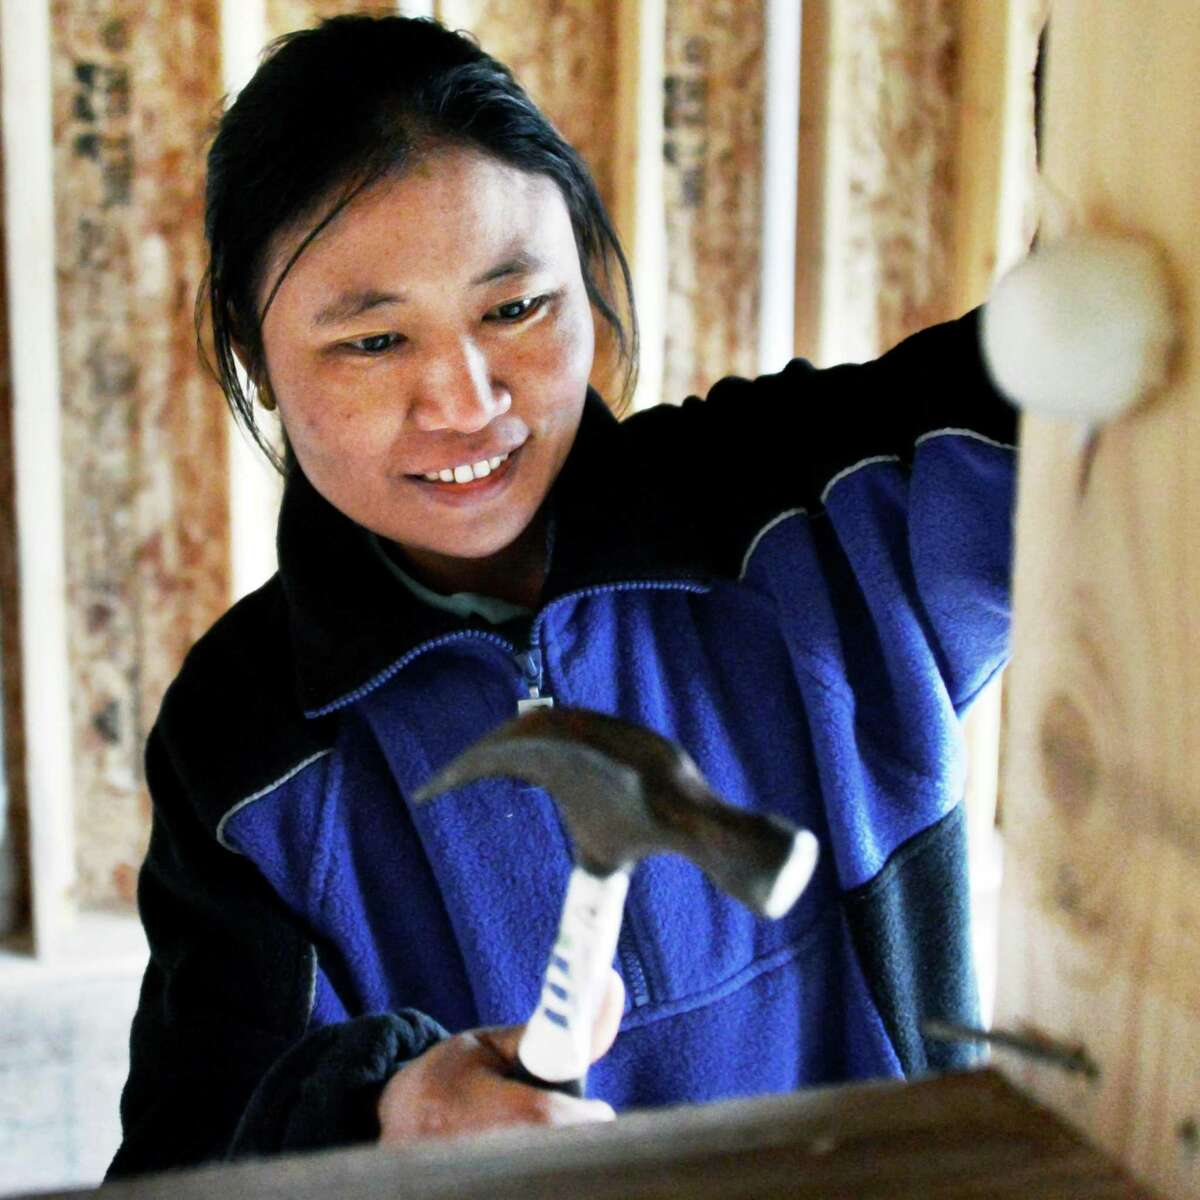 Steah Htoo from Myanmar hammers a nail at her new Habitat for Humanity house in Albany on Thursday, March 7, 2013. (John Carl D'Annibale / Times Union)